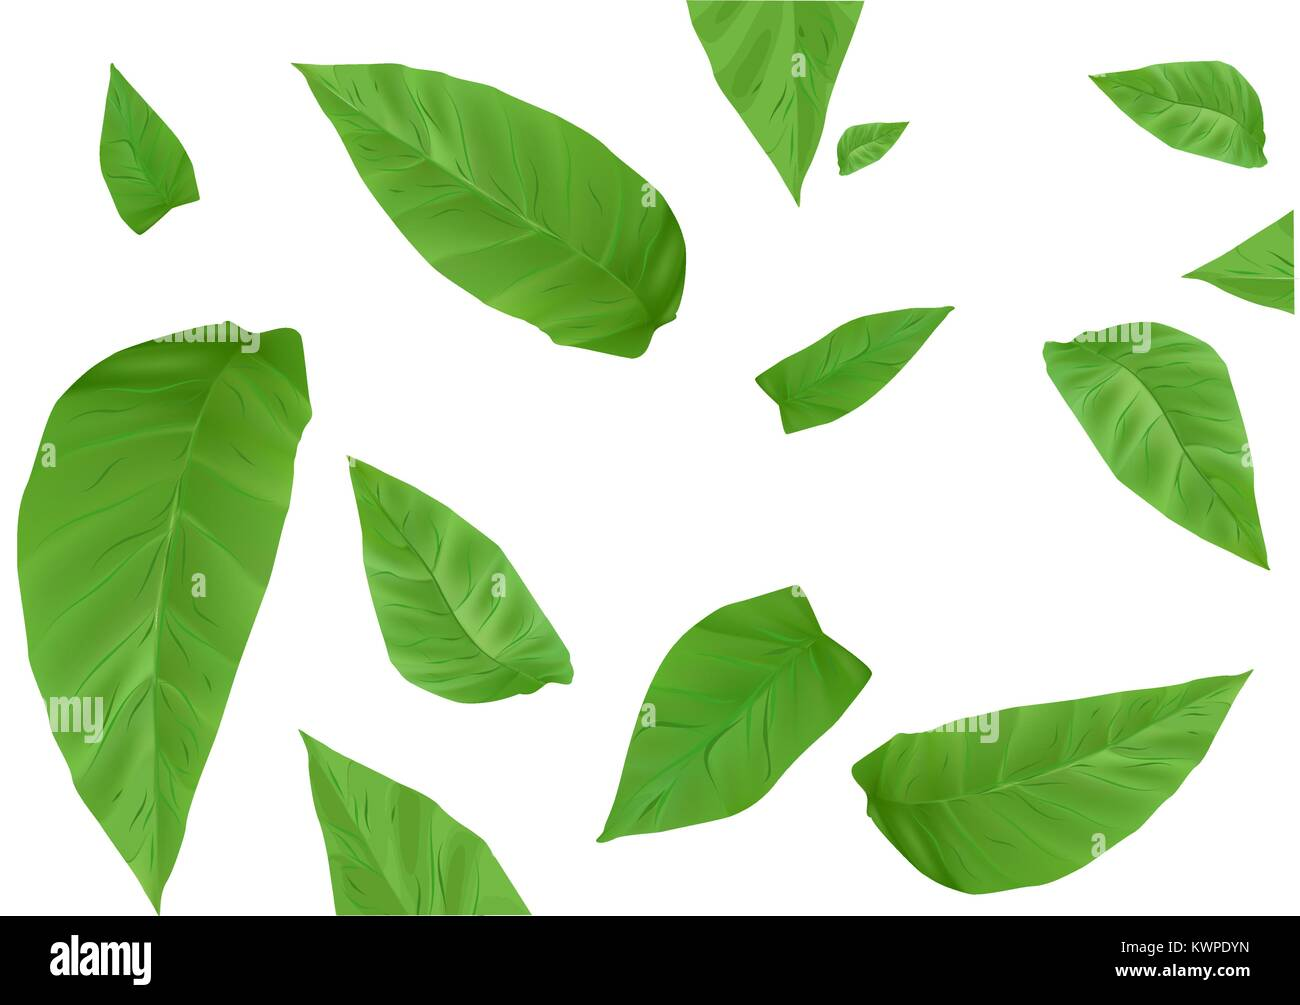 tobacco leaves isolated on a white background - Stock Image